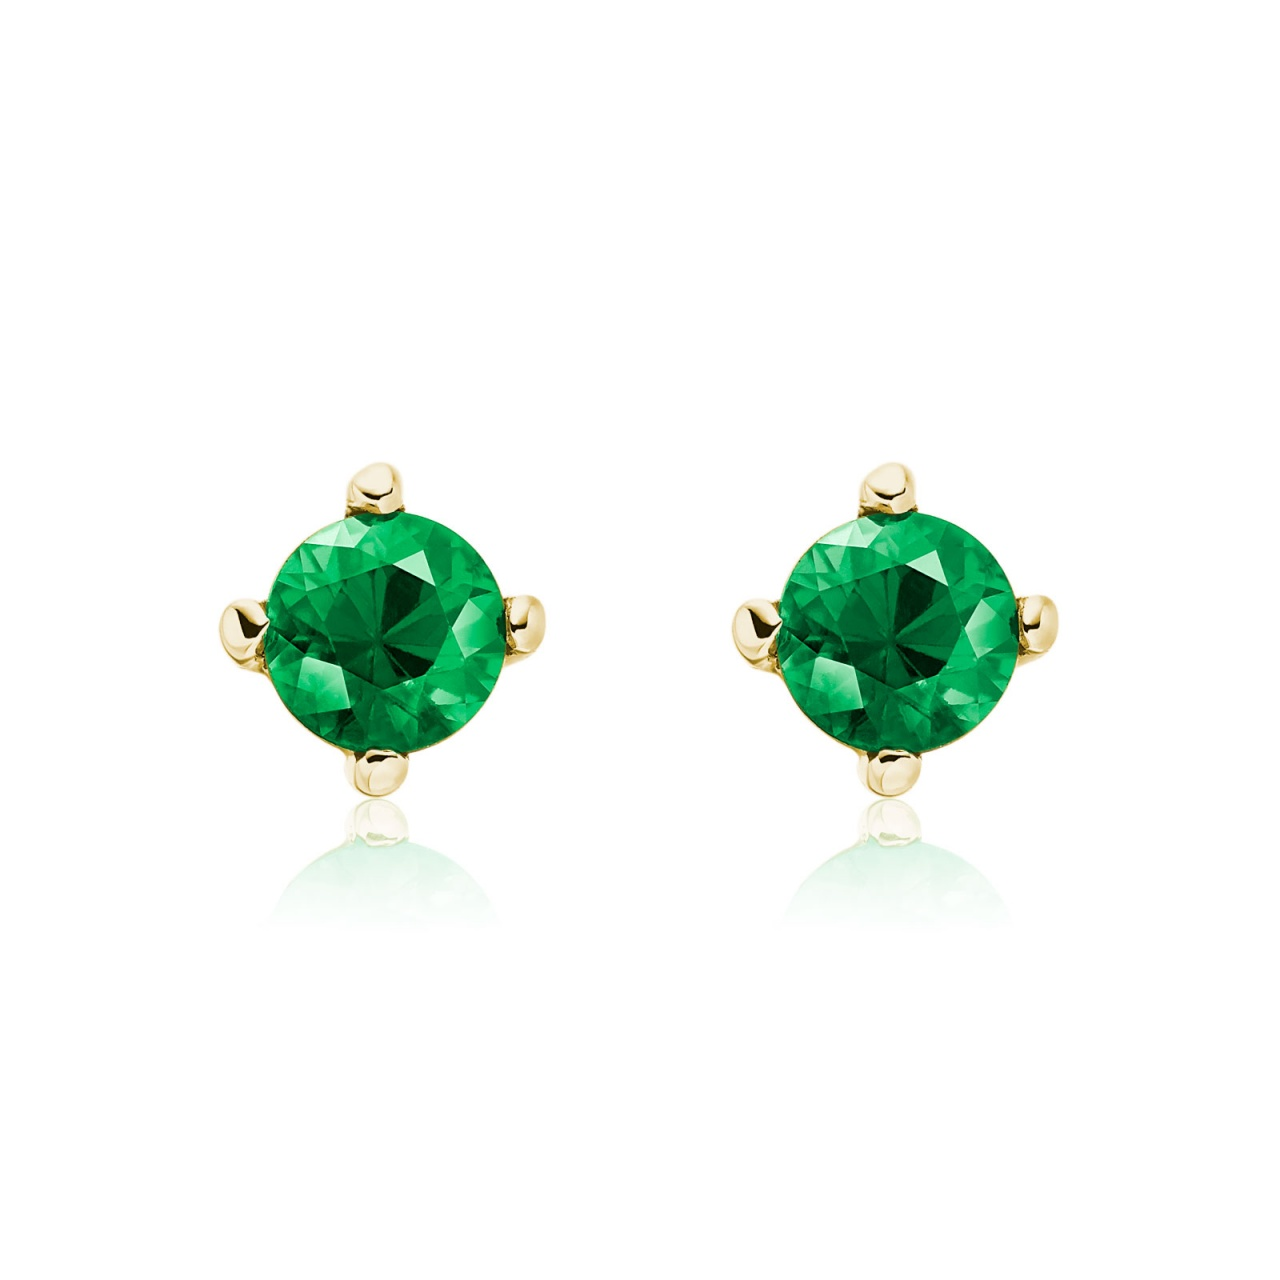 Emerald Stud Earrings in 18 Carat Yellow Gold-1